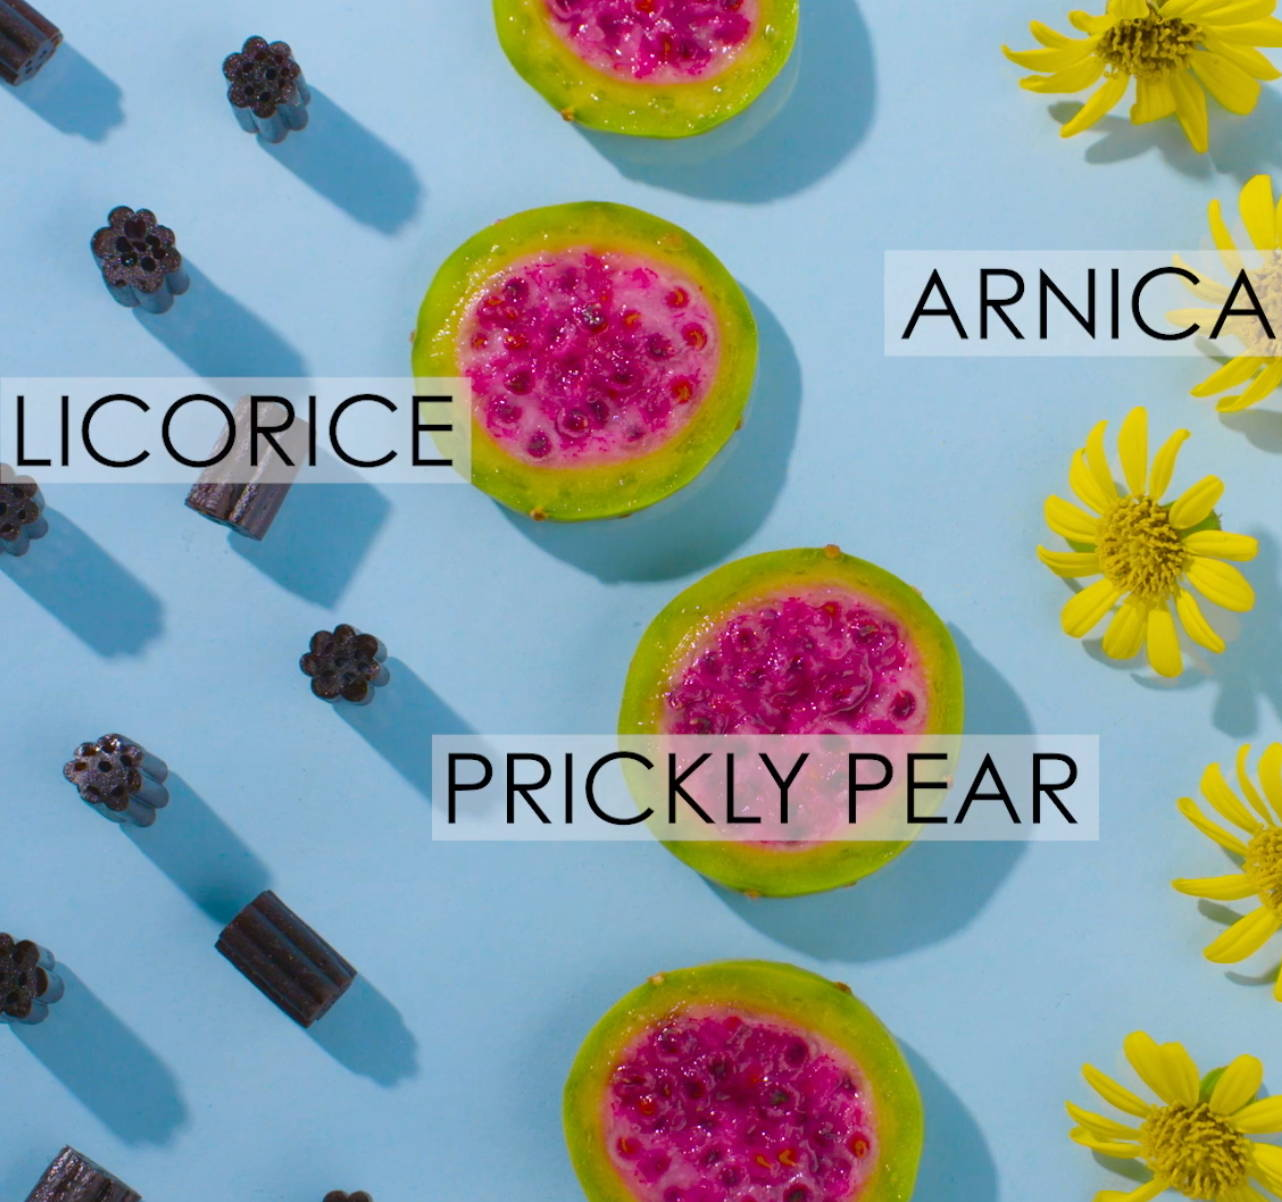 Good Genes ingredients licorice prickly pear arnica